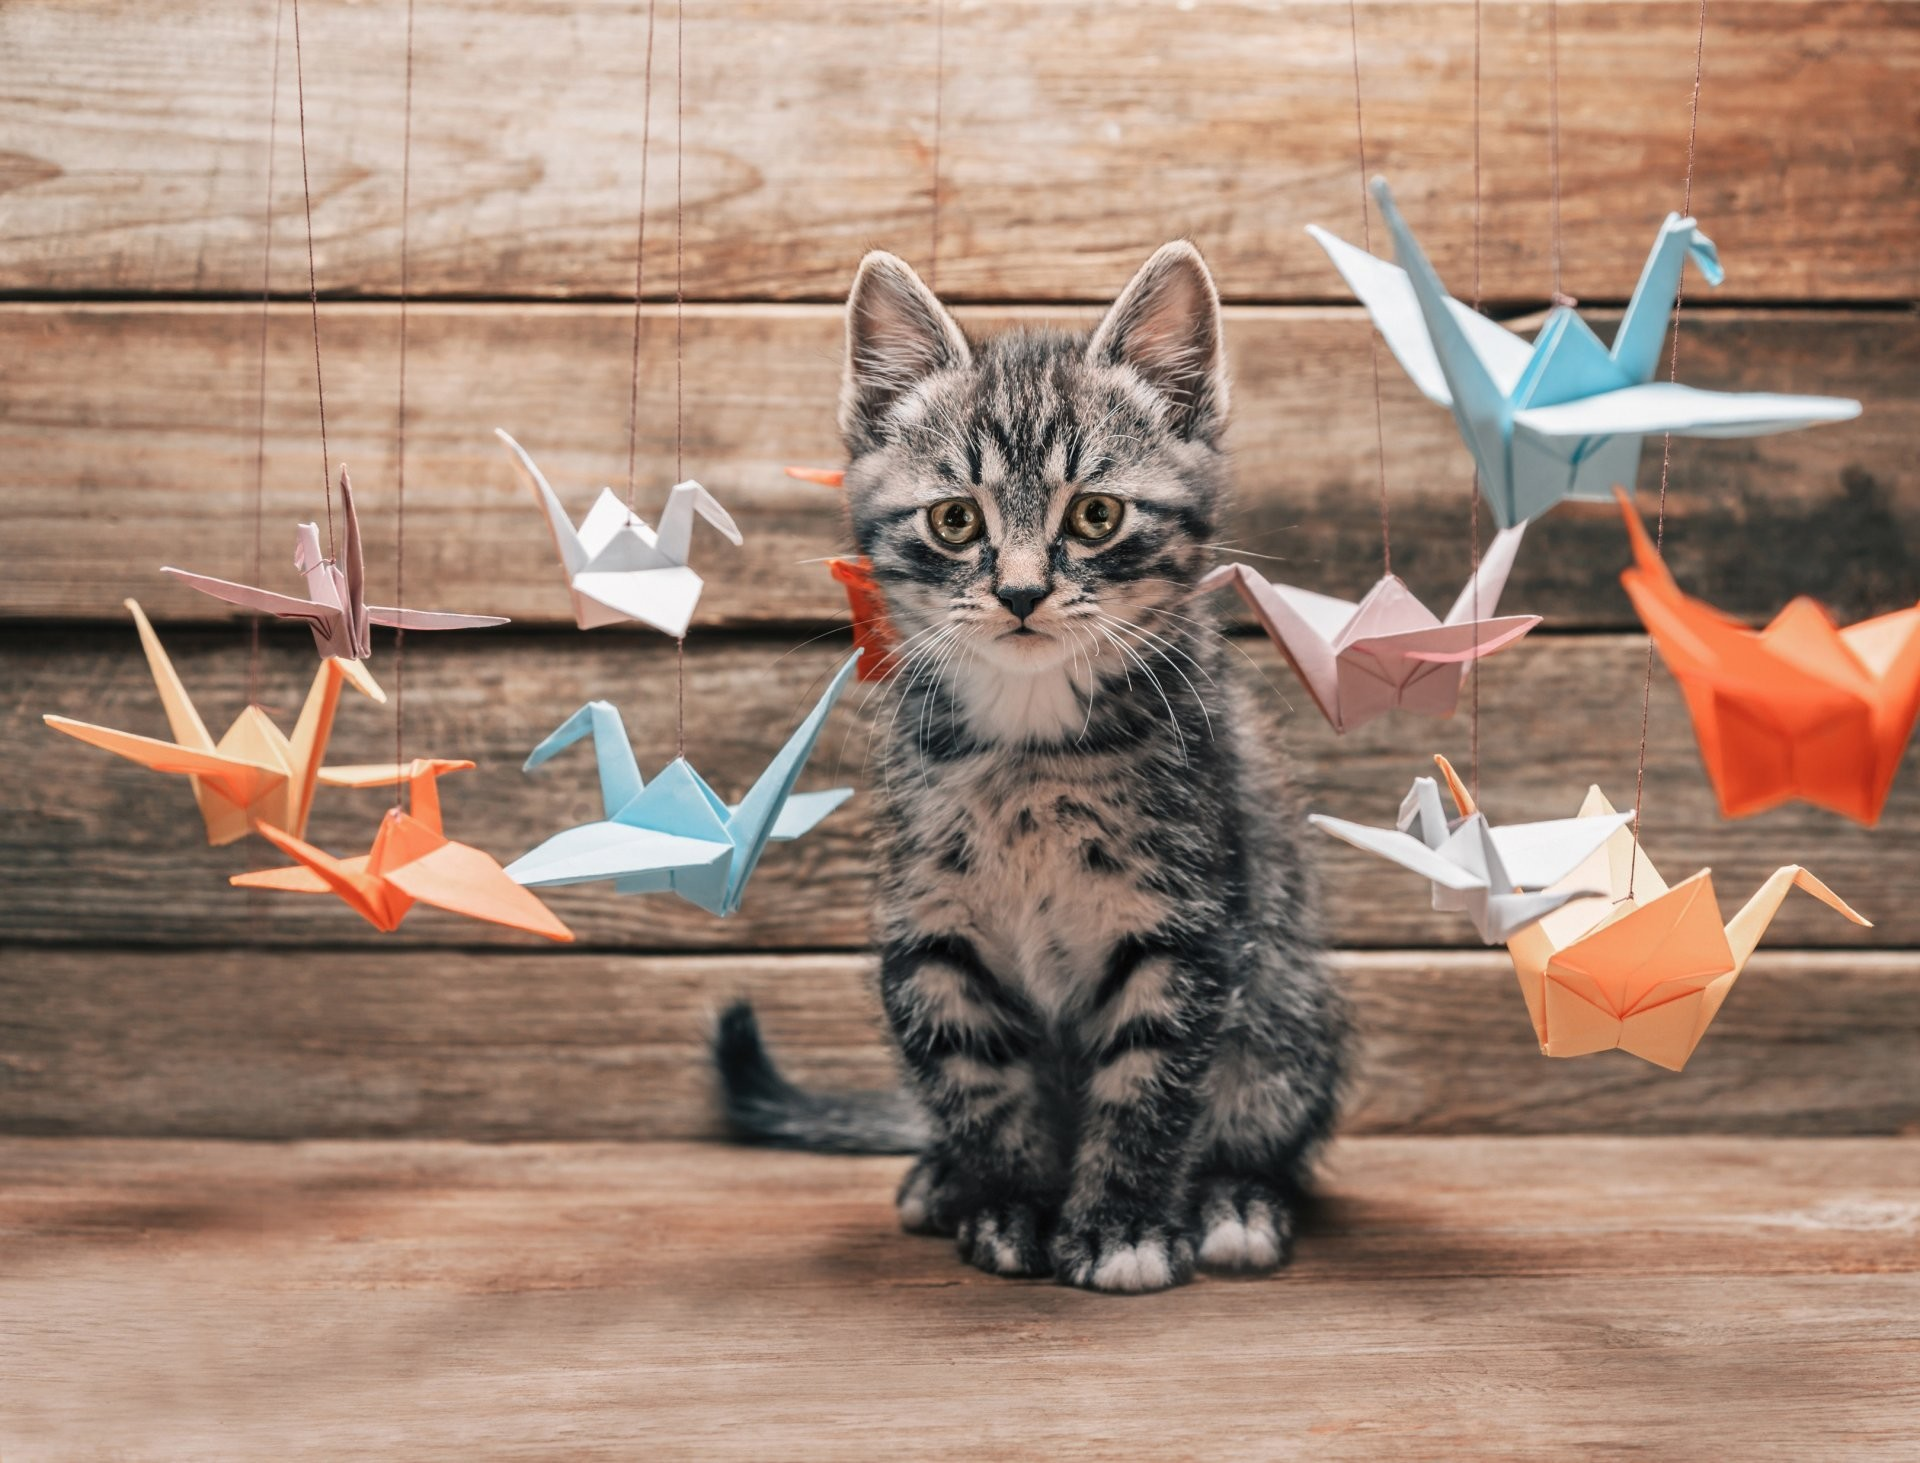 1920x1463 cat kotyara mustache feet tail surprised of interest selection colored  summer colorful paper origami crane zhuravliki